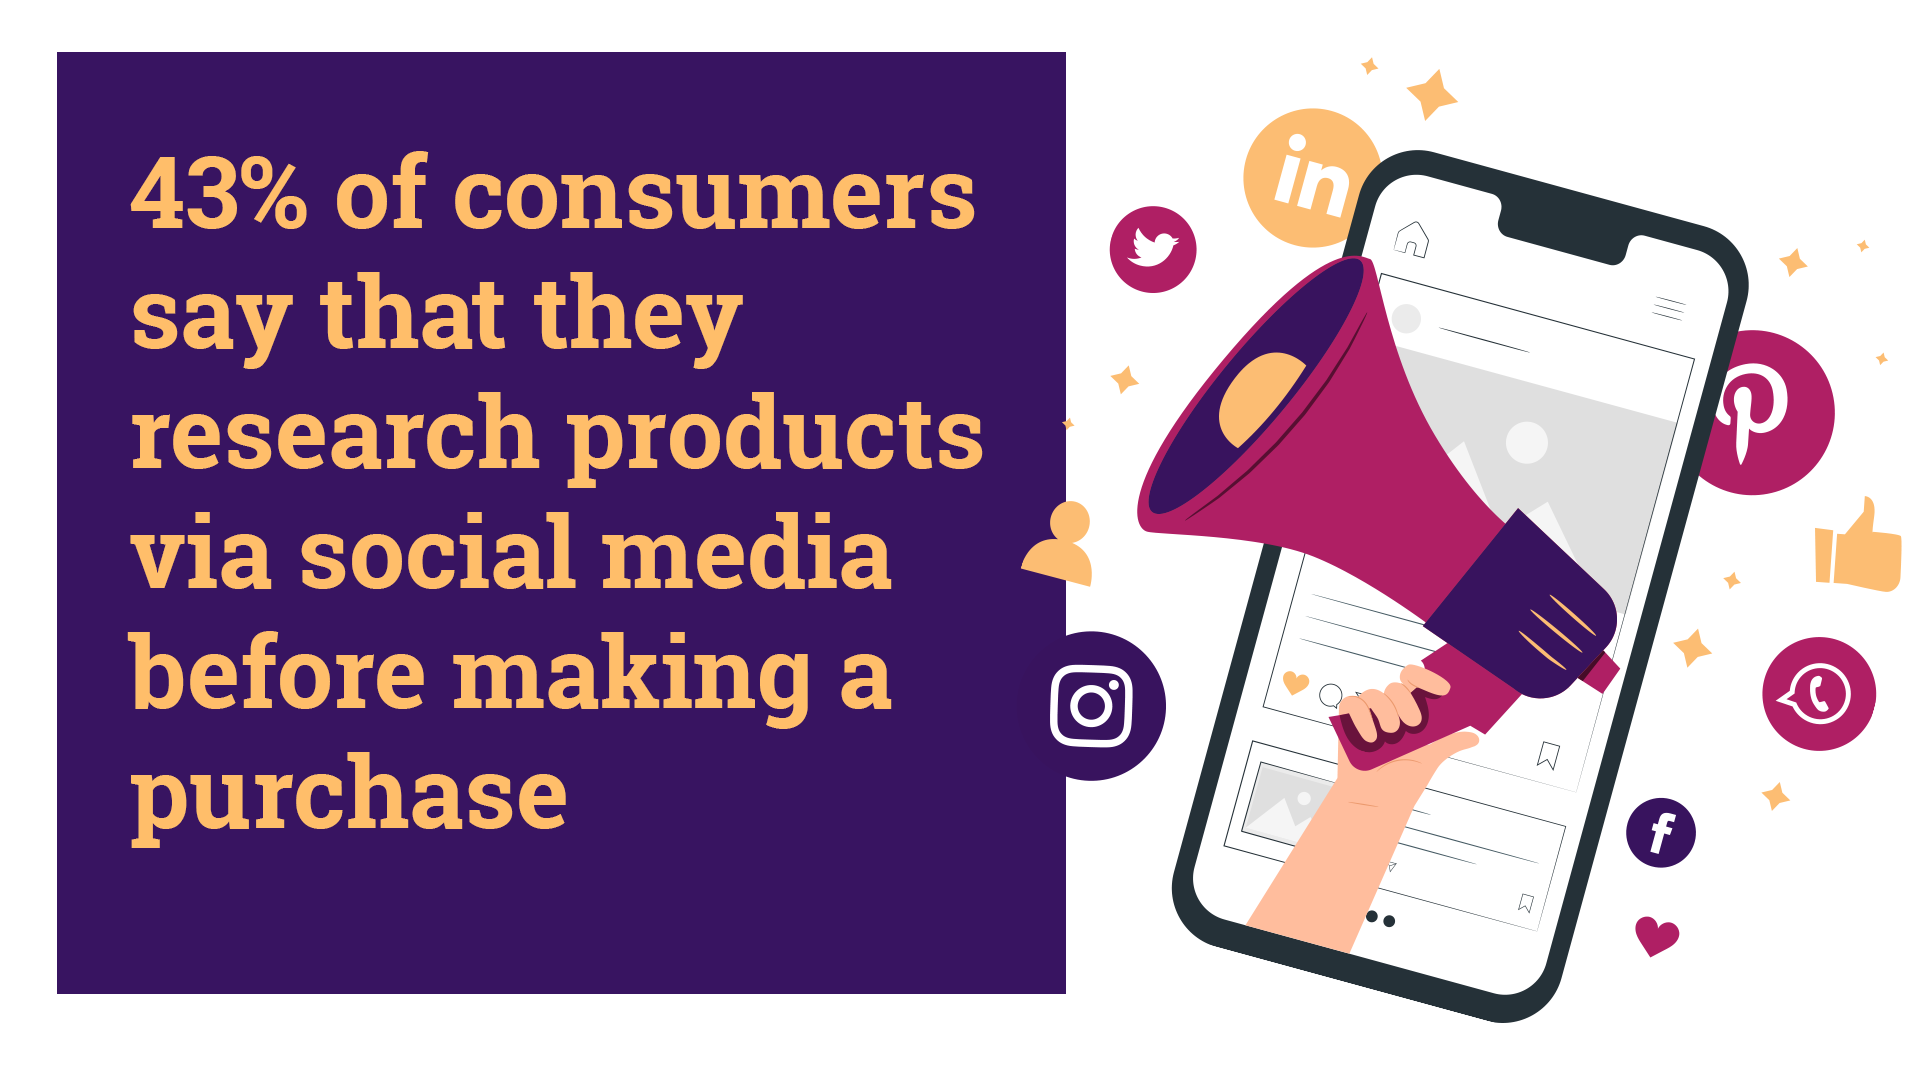 43% of consumers say that they research products via social media before making a purchase, social media, social media marketing, social media marketing strategy, market segmentation strategy